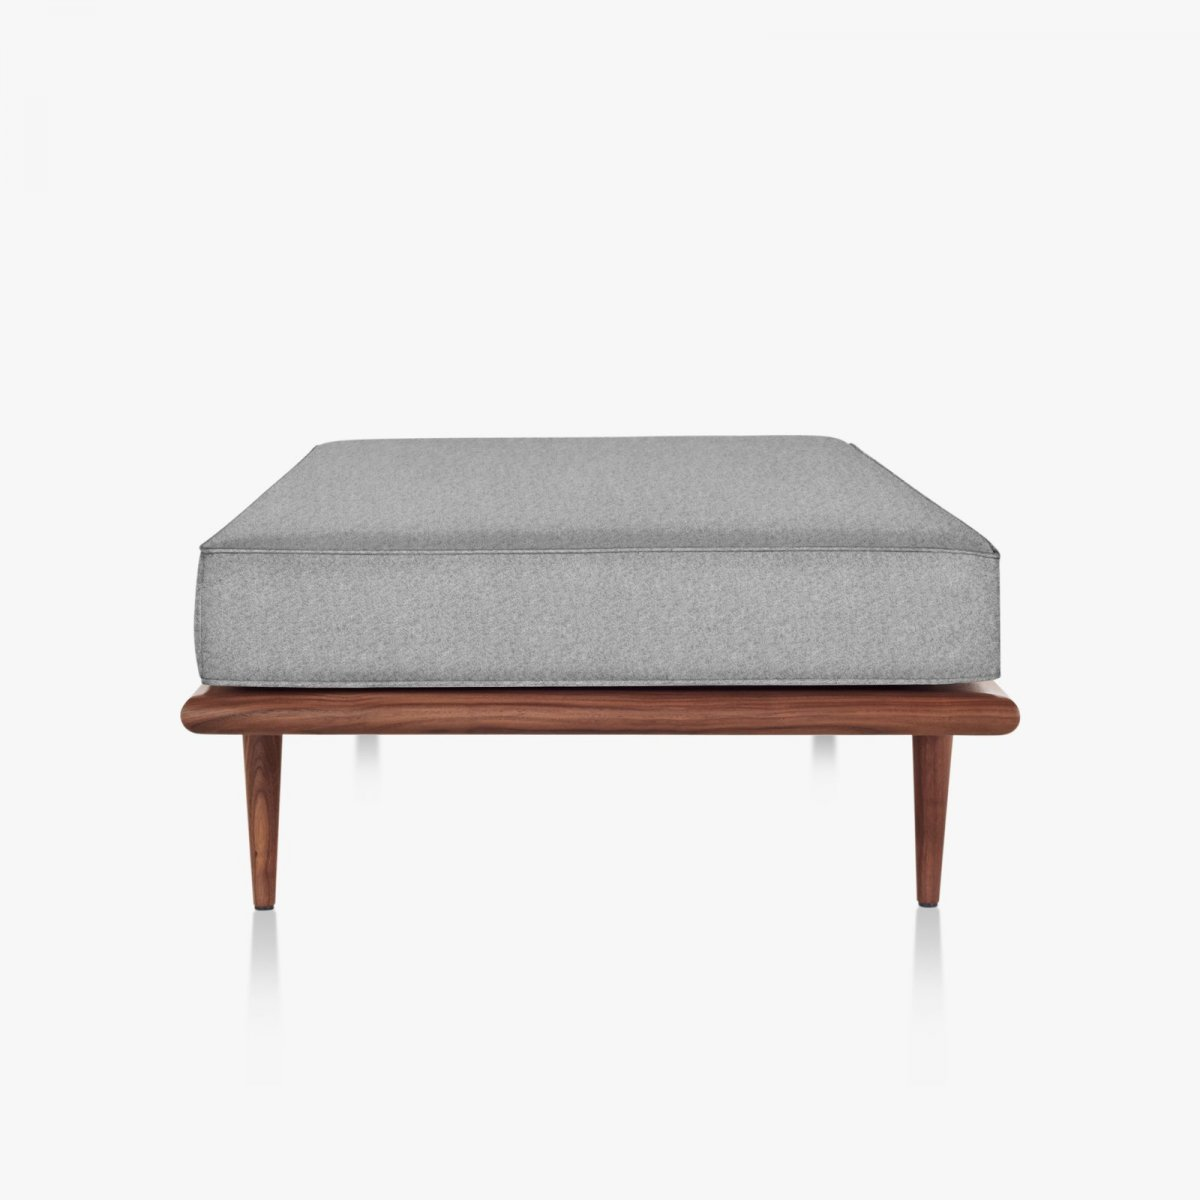 Nelson Daybed with wood taper legs, side view.